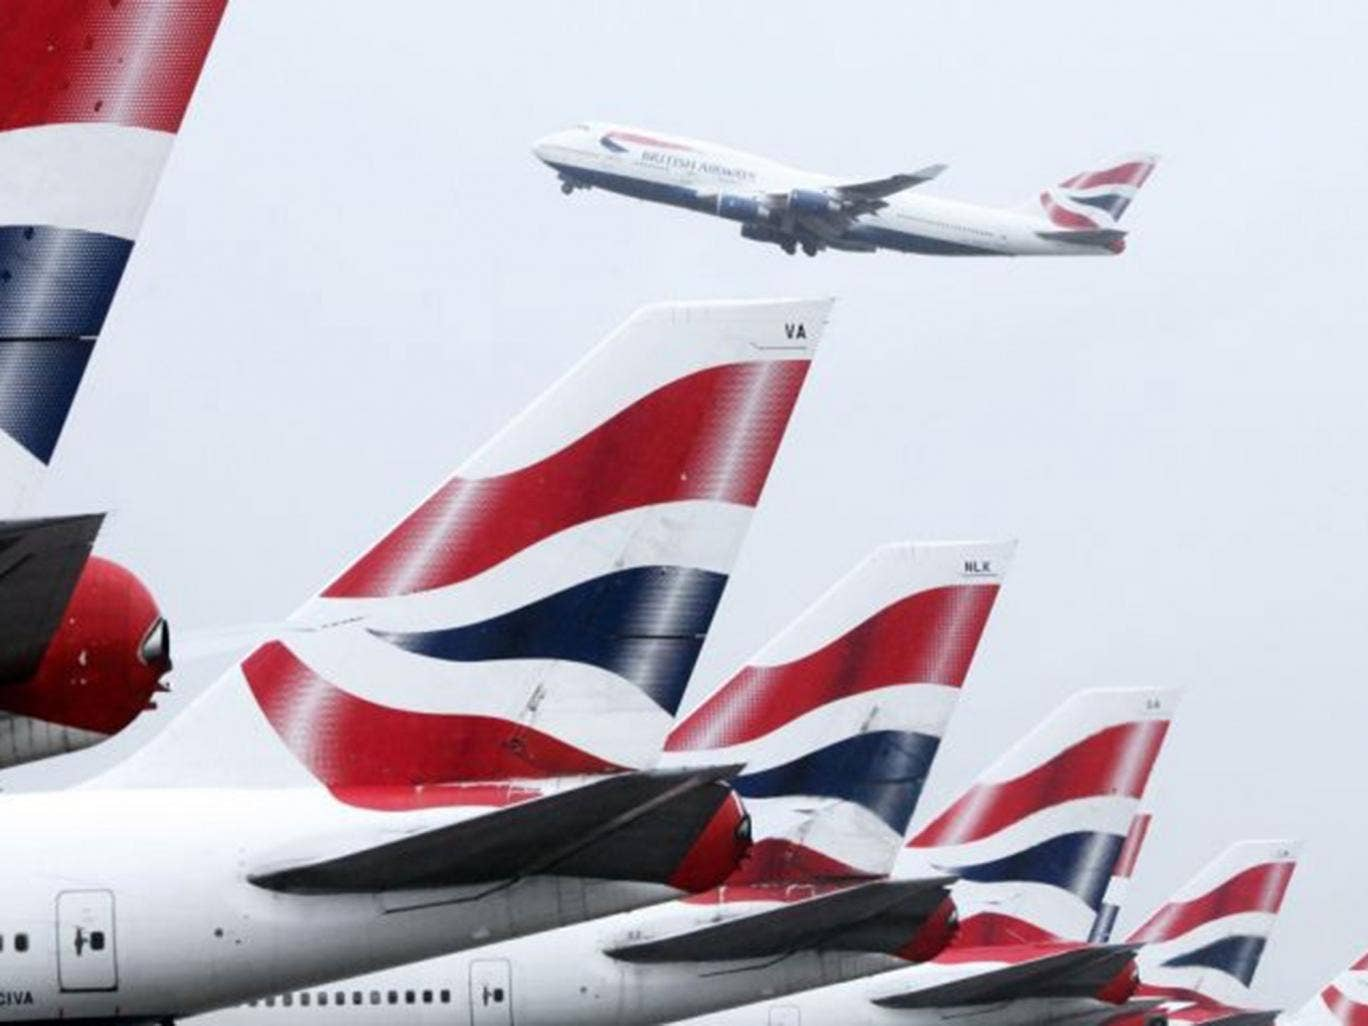 The once-daily British Airways flight to Kiev took off as scheduled